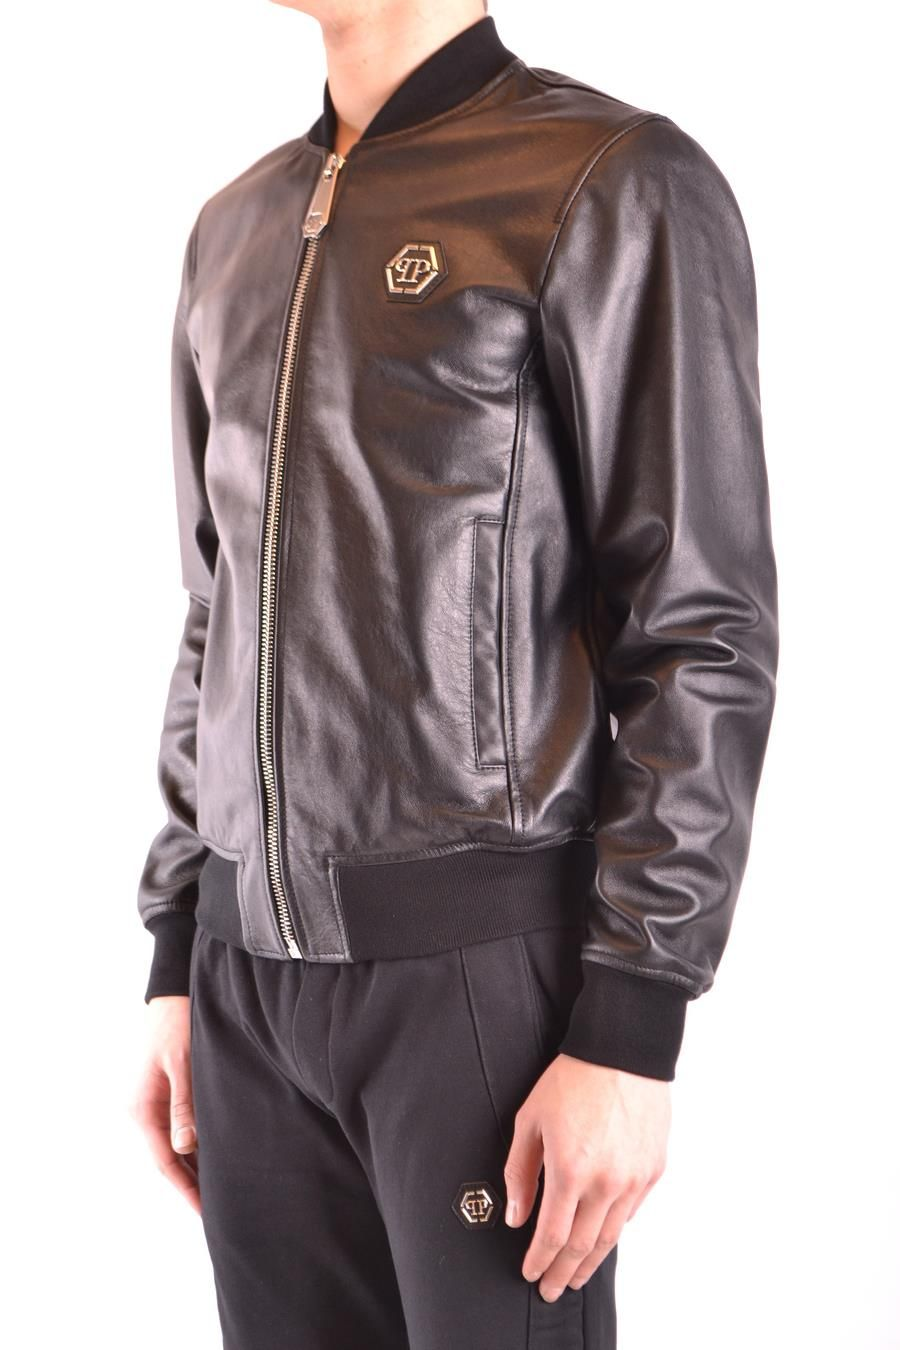 Philipp Plein Men's Leather Outerwear Jacket bis zu 70